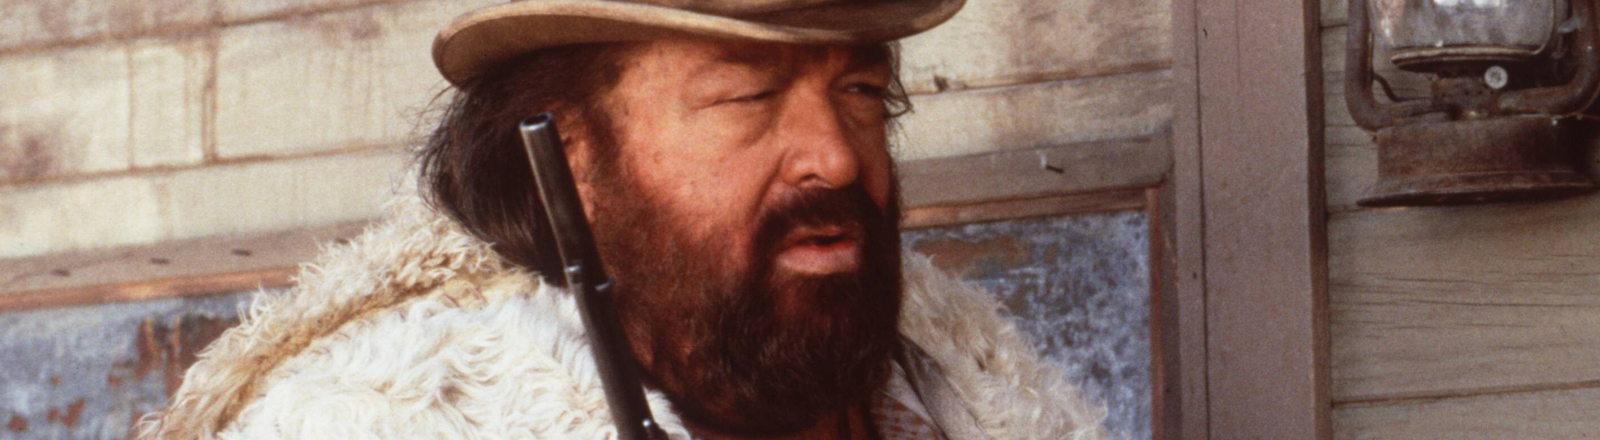 "Bud Spencer im Film ""Die Troublemaker"""